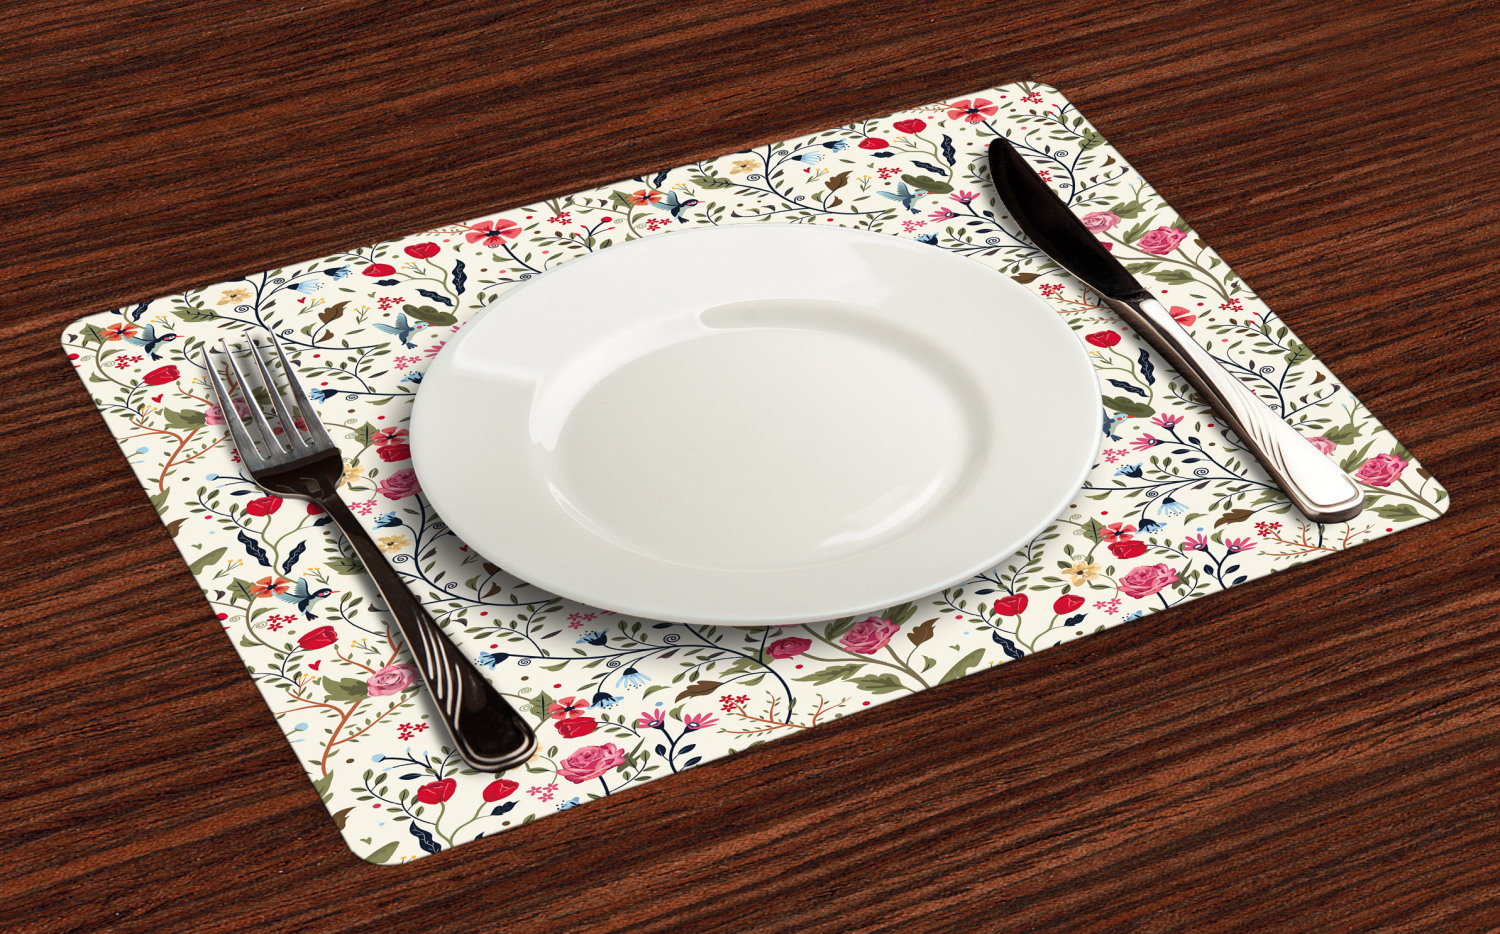 Ambesonne-Flower-Pattern-Placemat-Set-of-4-Fabric-Place-Mats-for-Table-Decor thumbnail 33